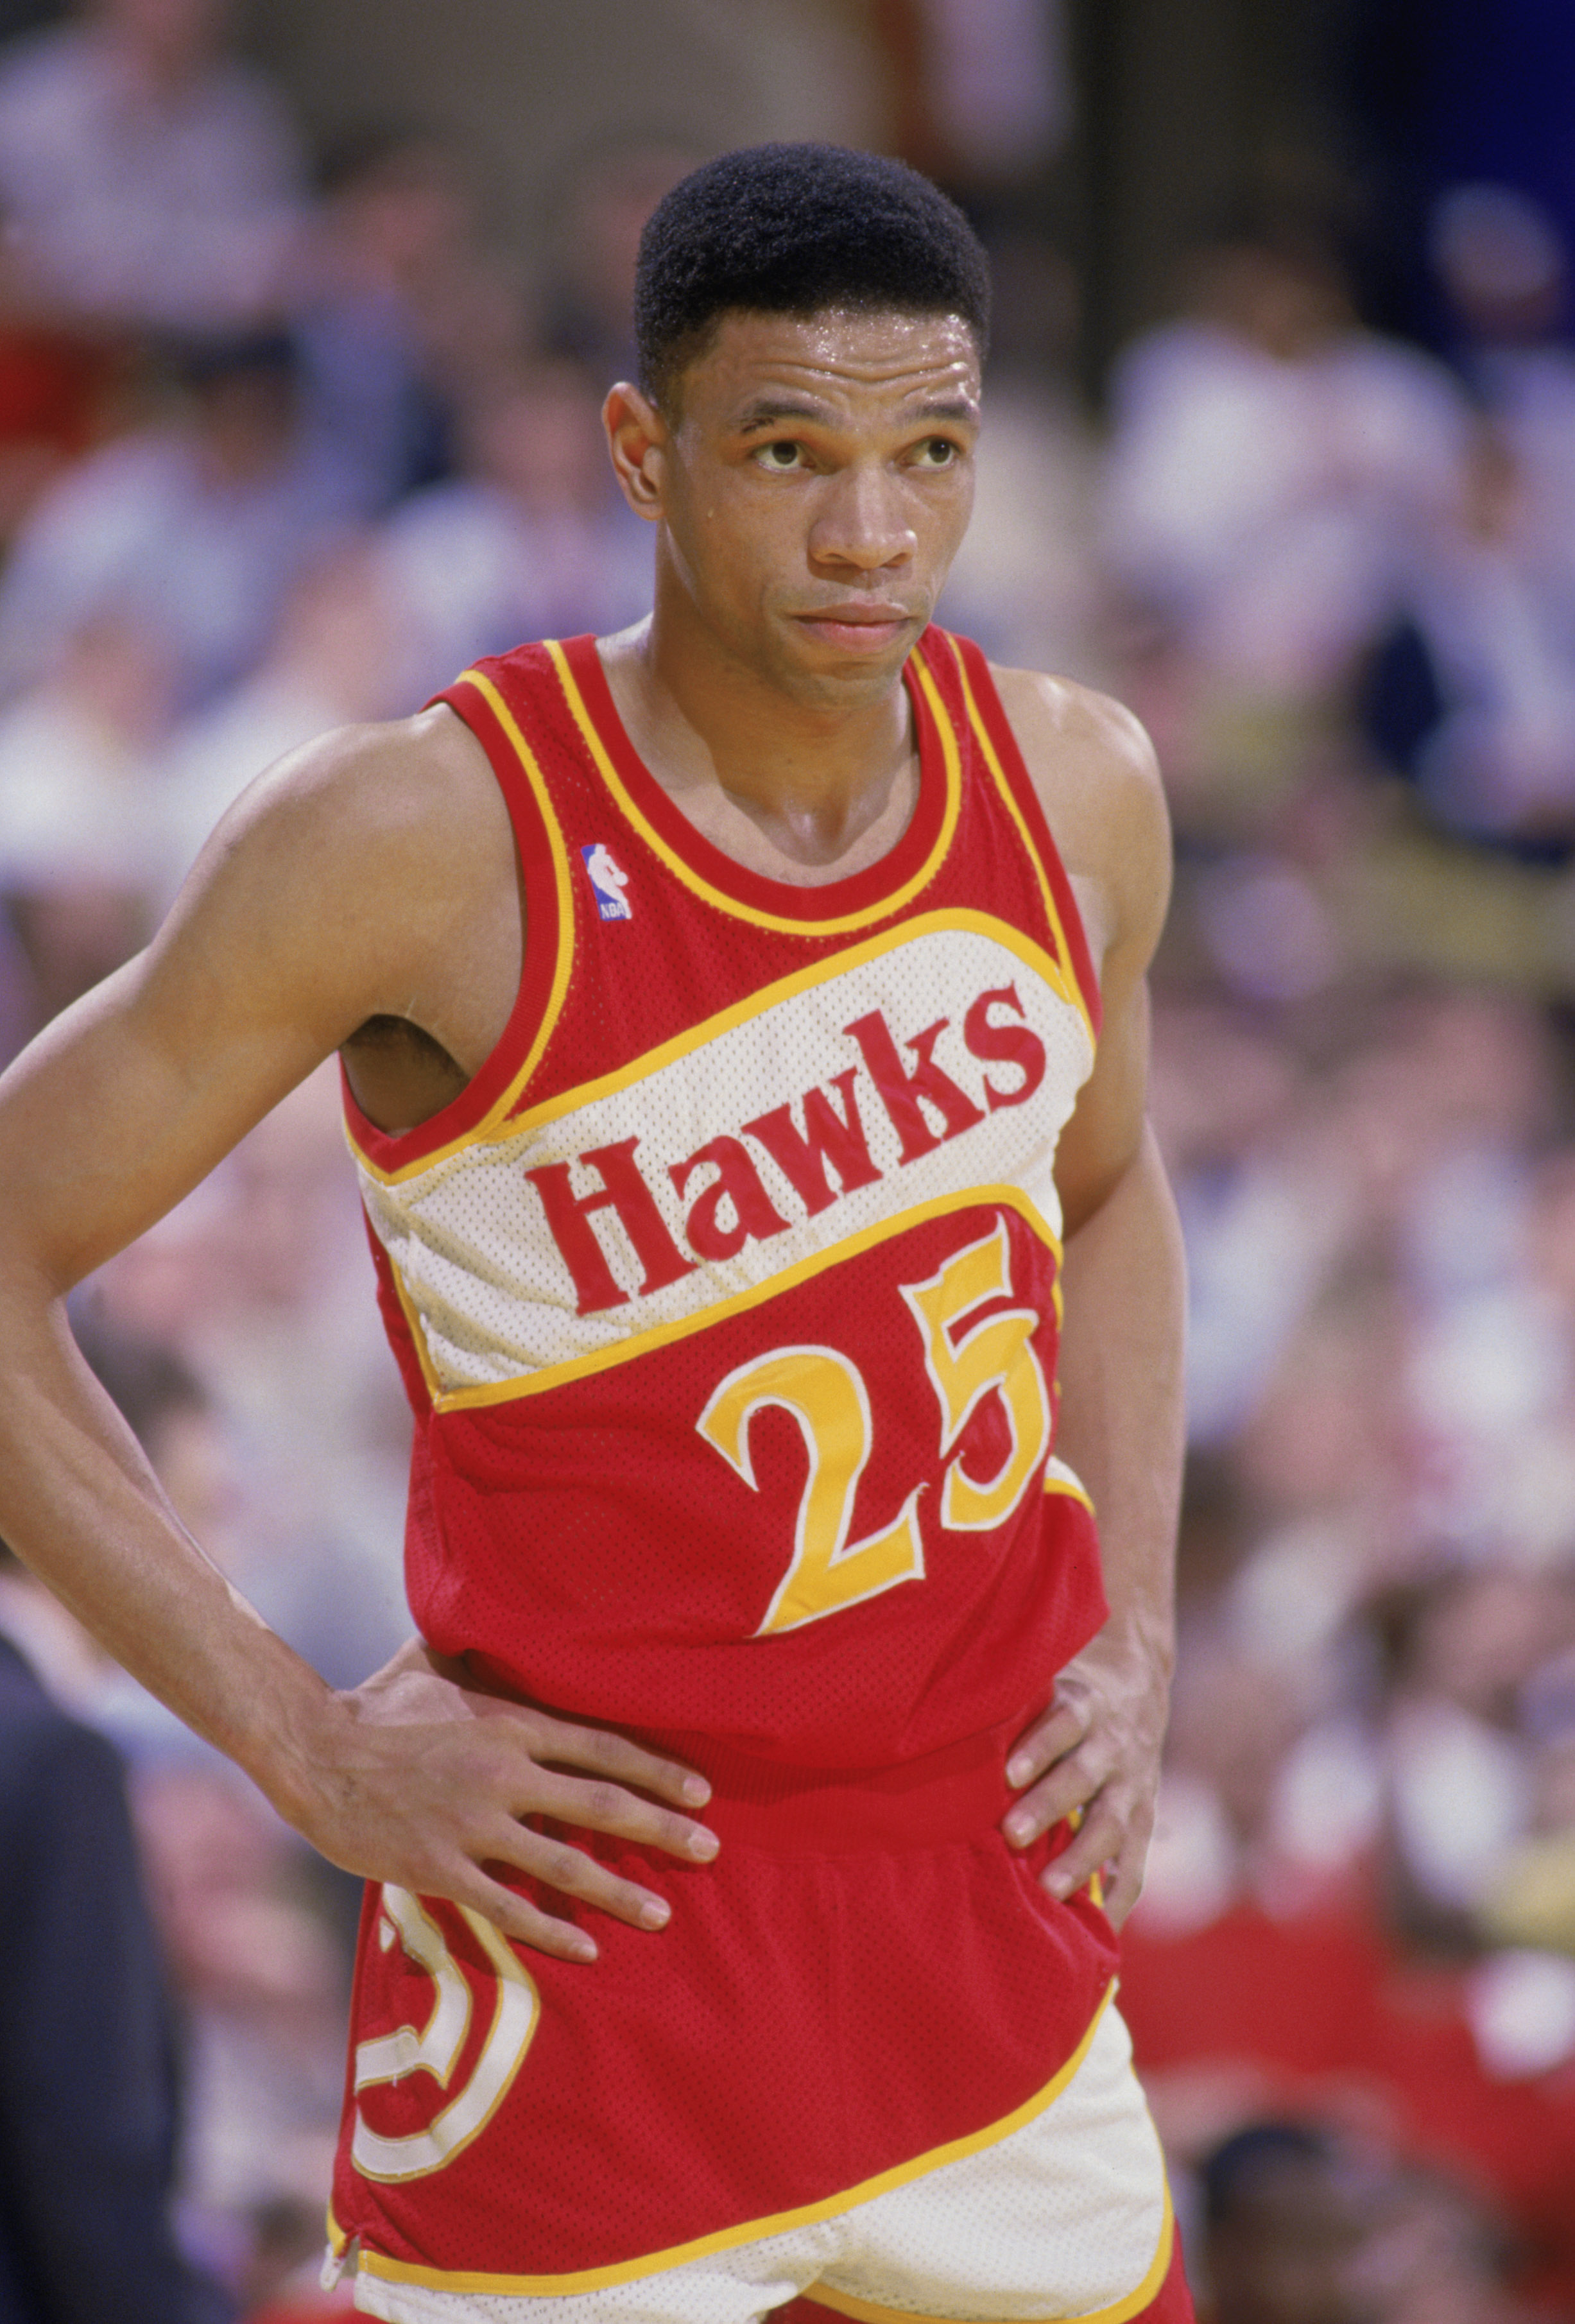 INGLEWOOD, CA - 1987:  Glenn 'Doc' Rivers #25 of the Atlanta Hawks stands on the court during a NBA game against the Los Angeles Lakers at the Great Western Forum in Inglewood, California in 1987.  (Photo by Stephen Dunn/Getty Images)